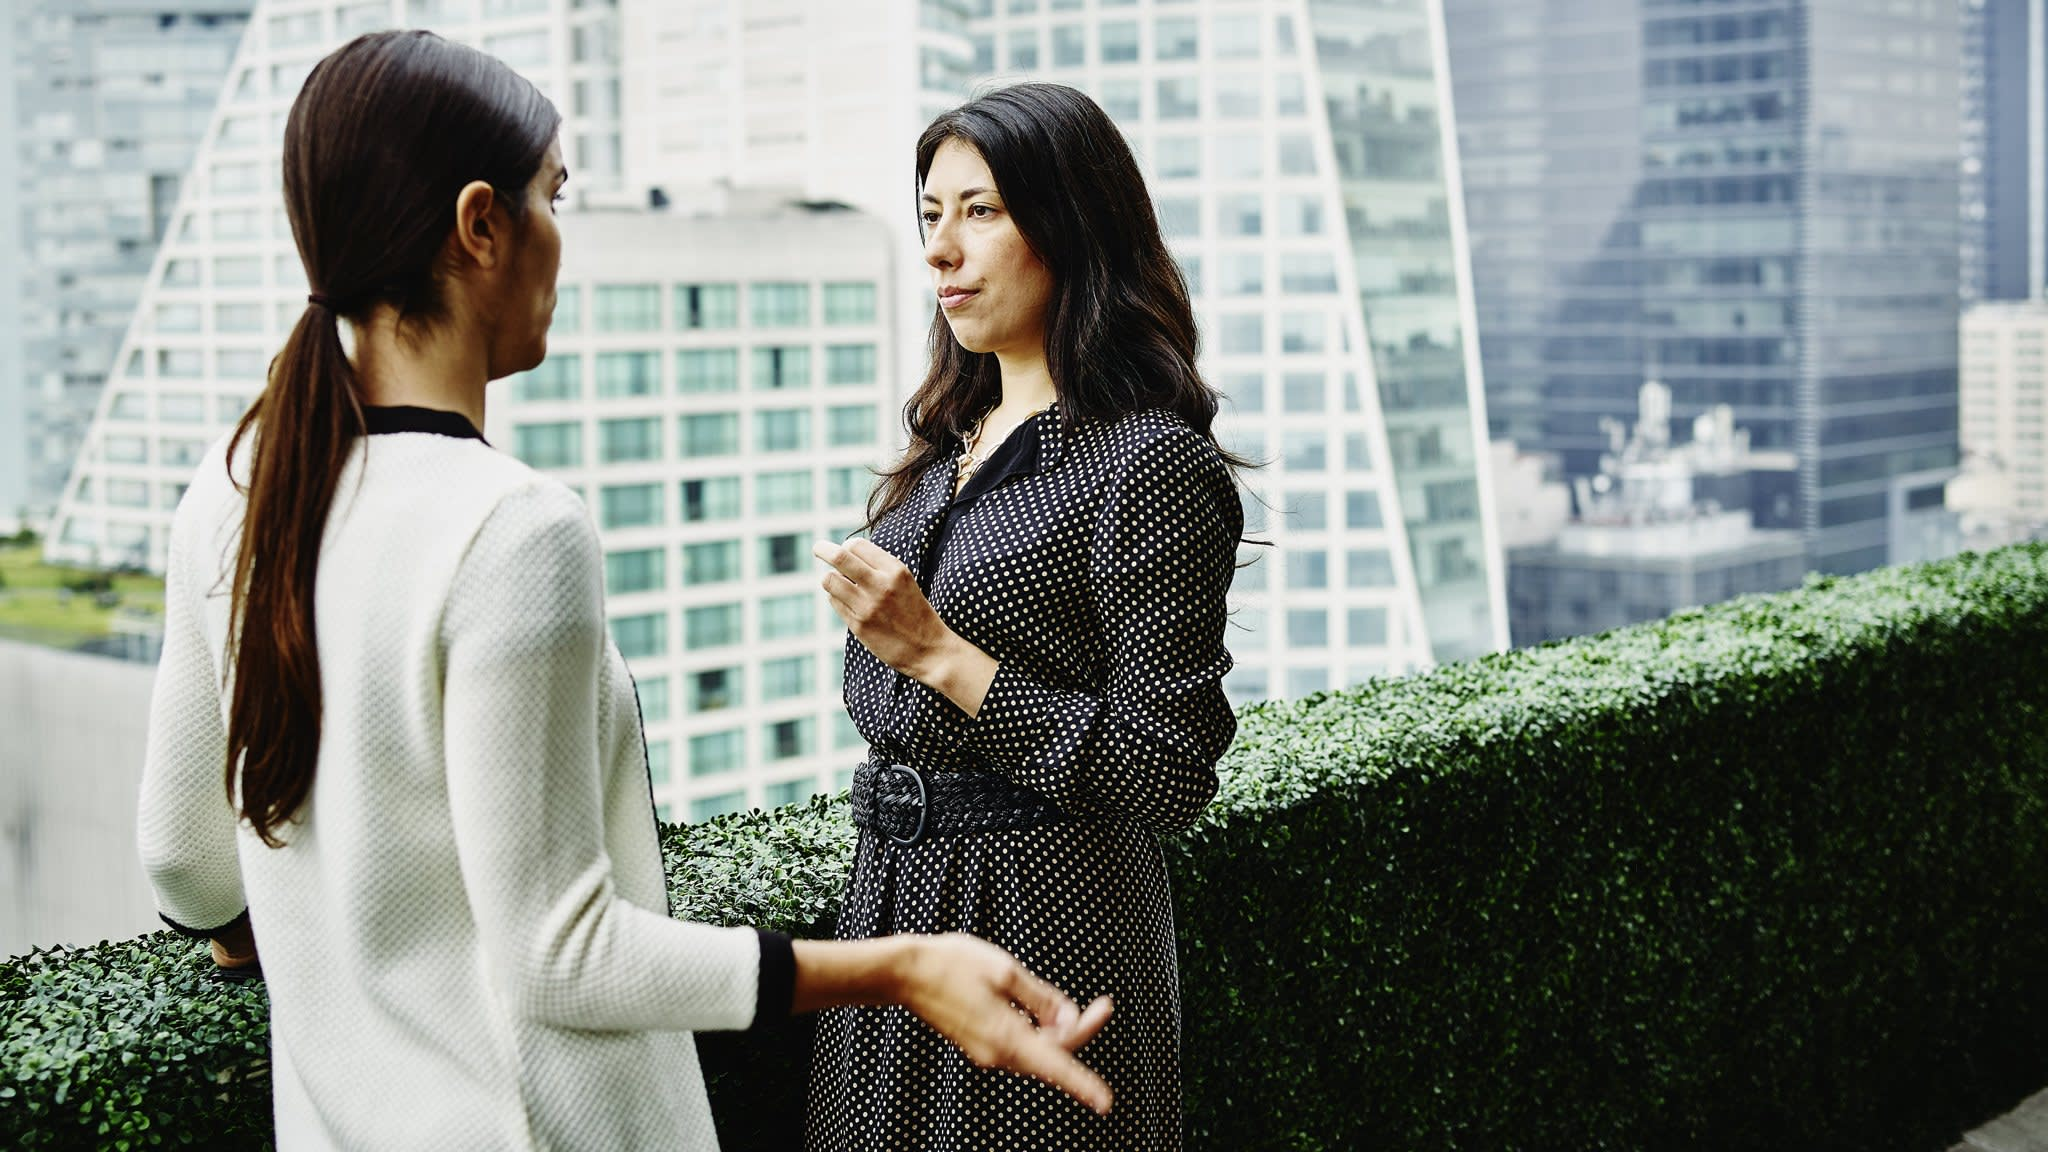 Strategies for a revolution in careers for women | Financial Times